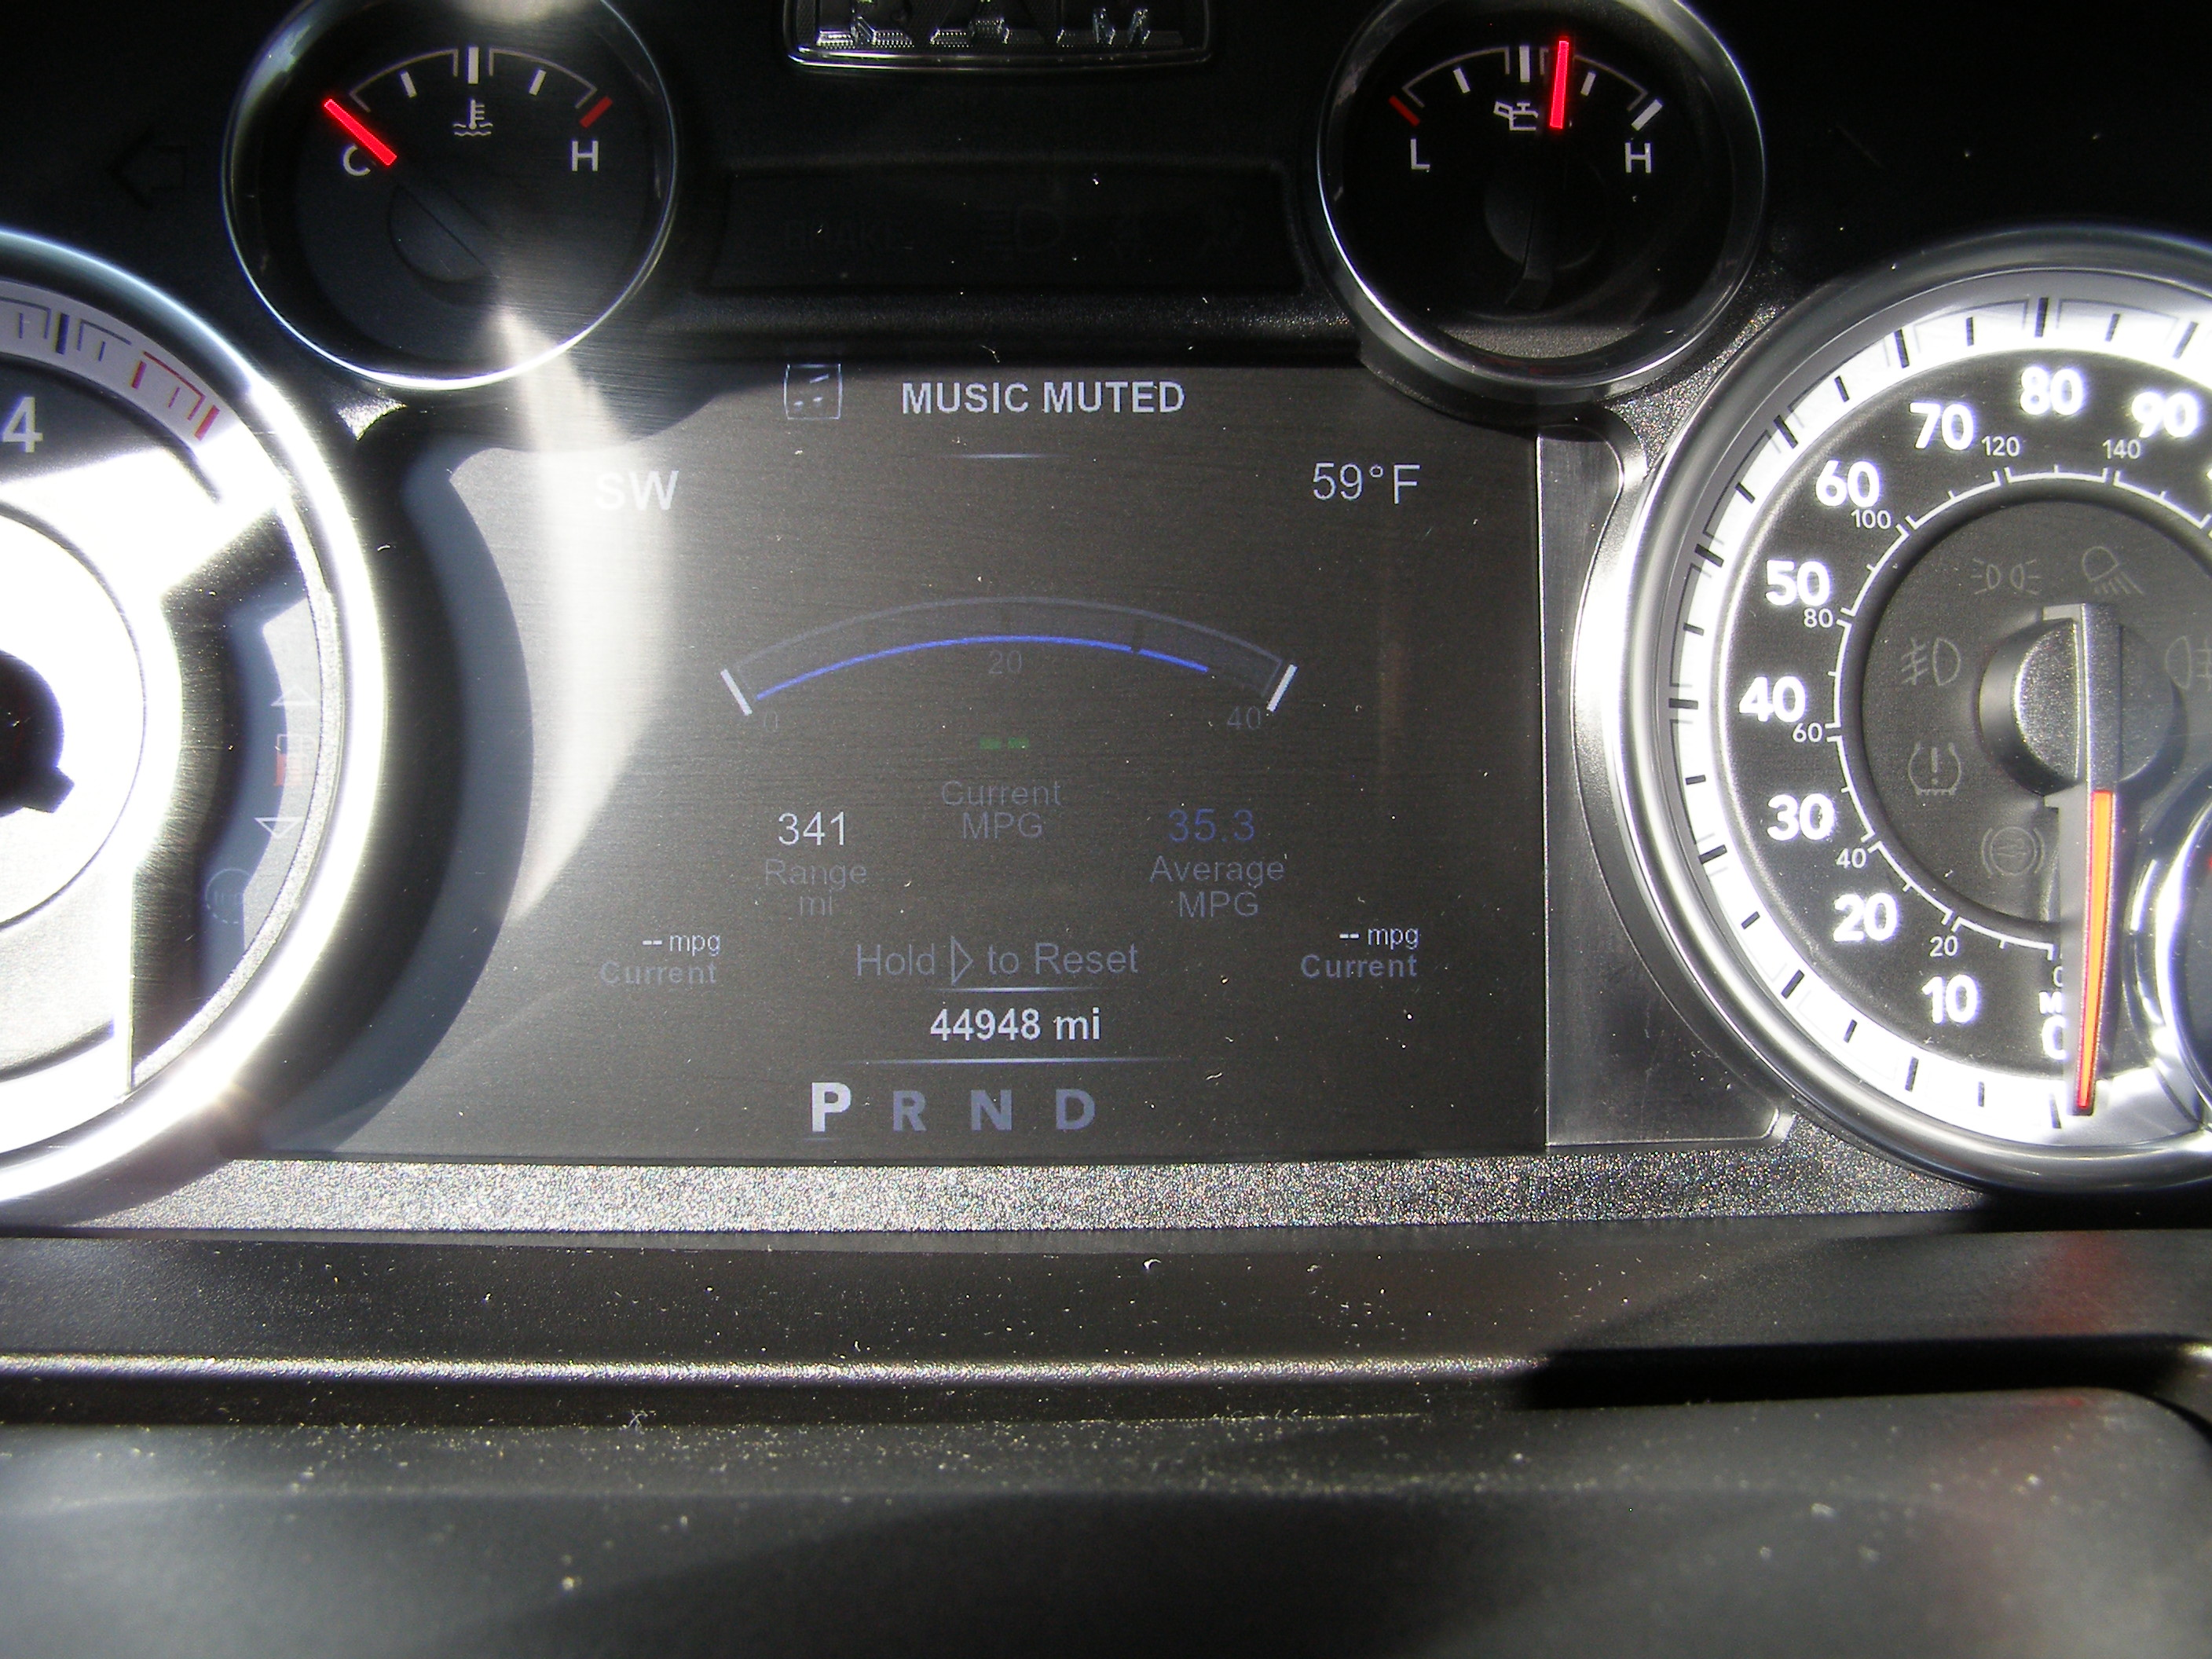 Even if the engine blows I still wouldn't ditch my EcoDiesel-p1010172.jpg